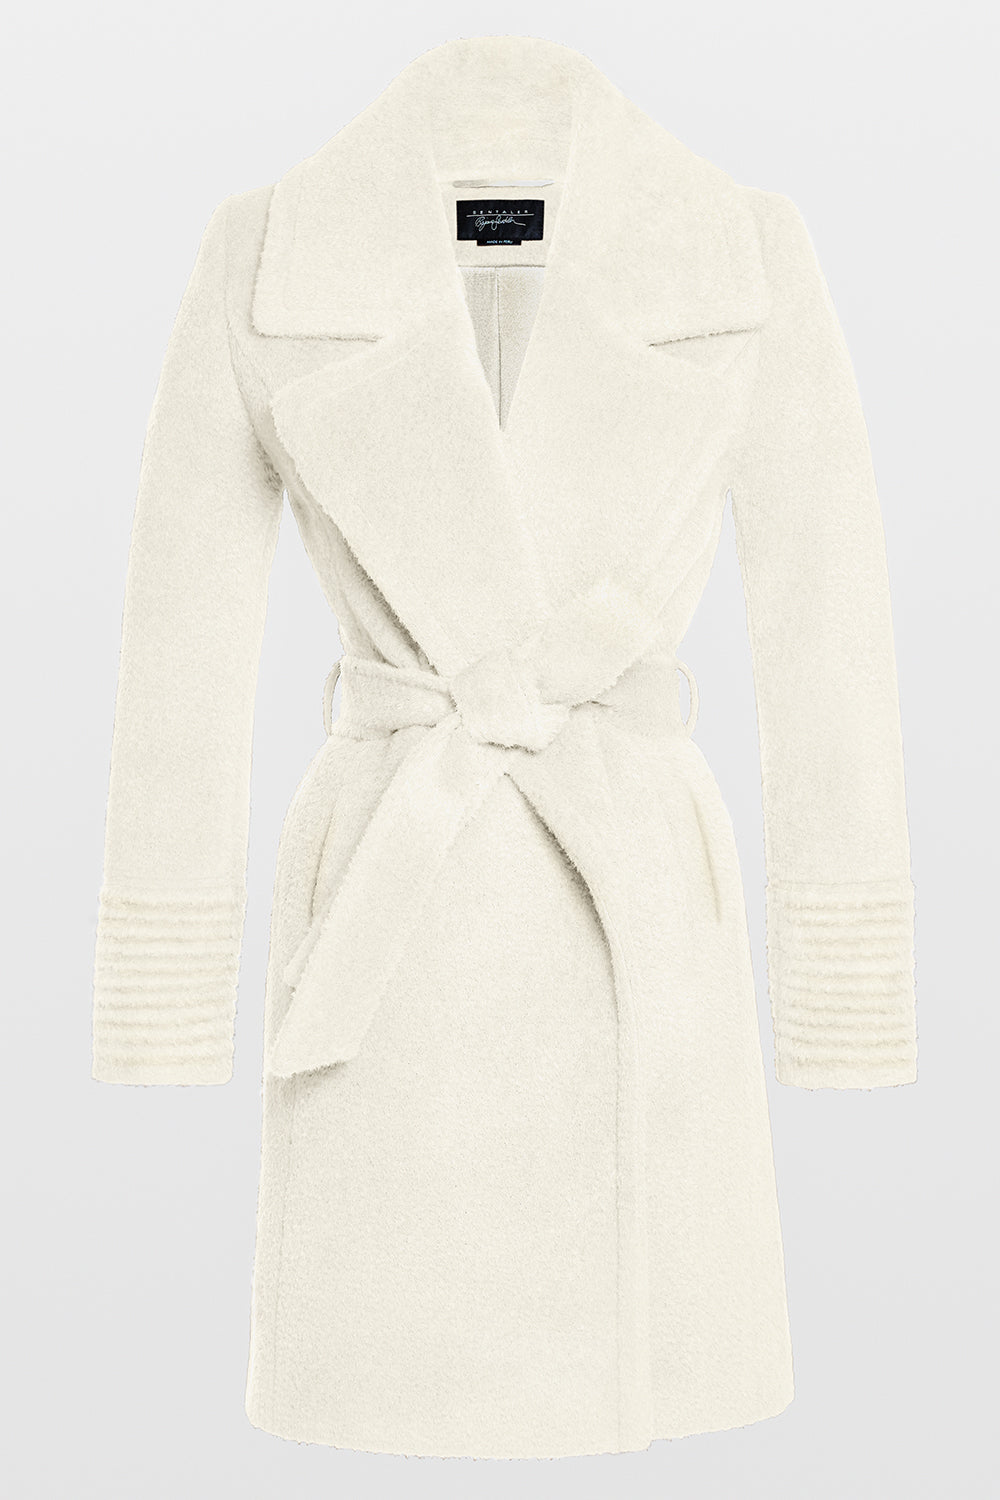 Sentaler Bouclé Alpaca Mid Length Notched Collar Wrap Coat featured in Bouclé Alpaca and available in Ivory. Seen off model.Sentaler Bouclé Alpaca Mid Length Notched Collar Wrap Coat featured in Bouclé Alpaca and available in Ivory. Seen off model.